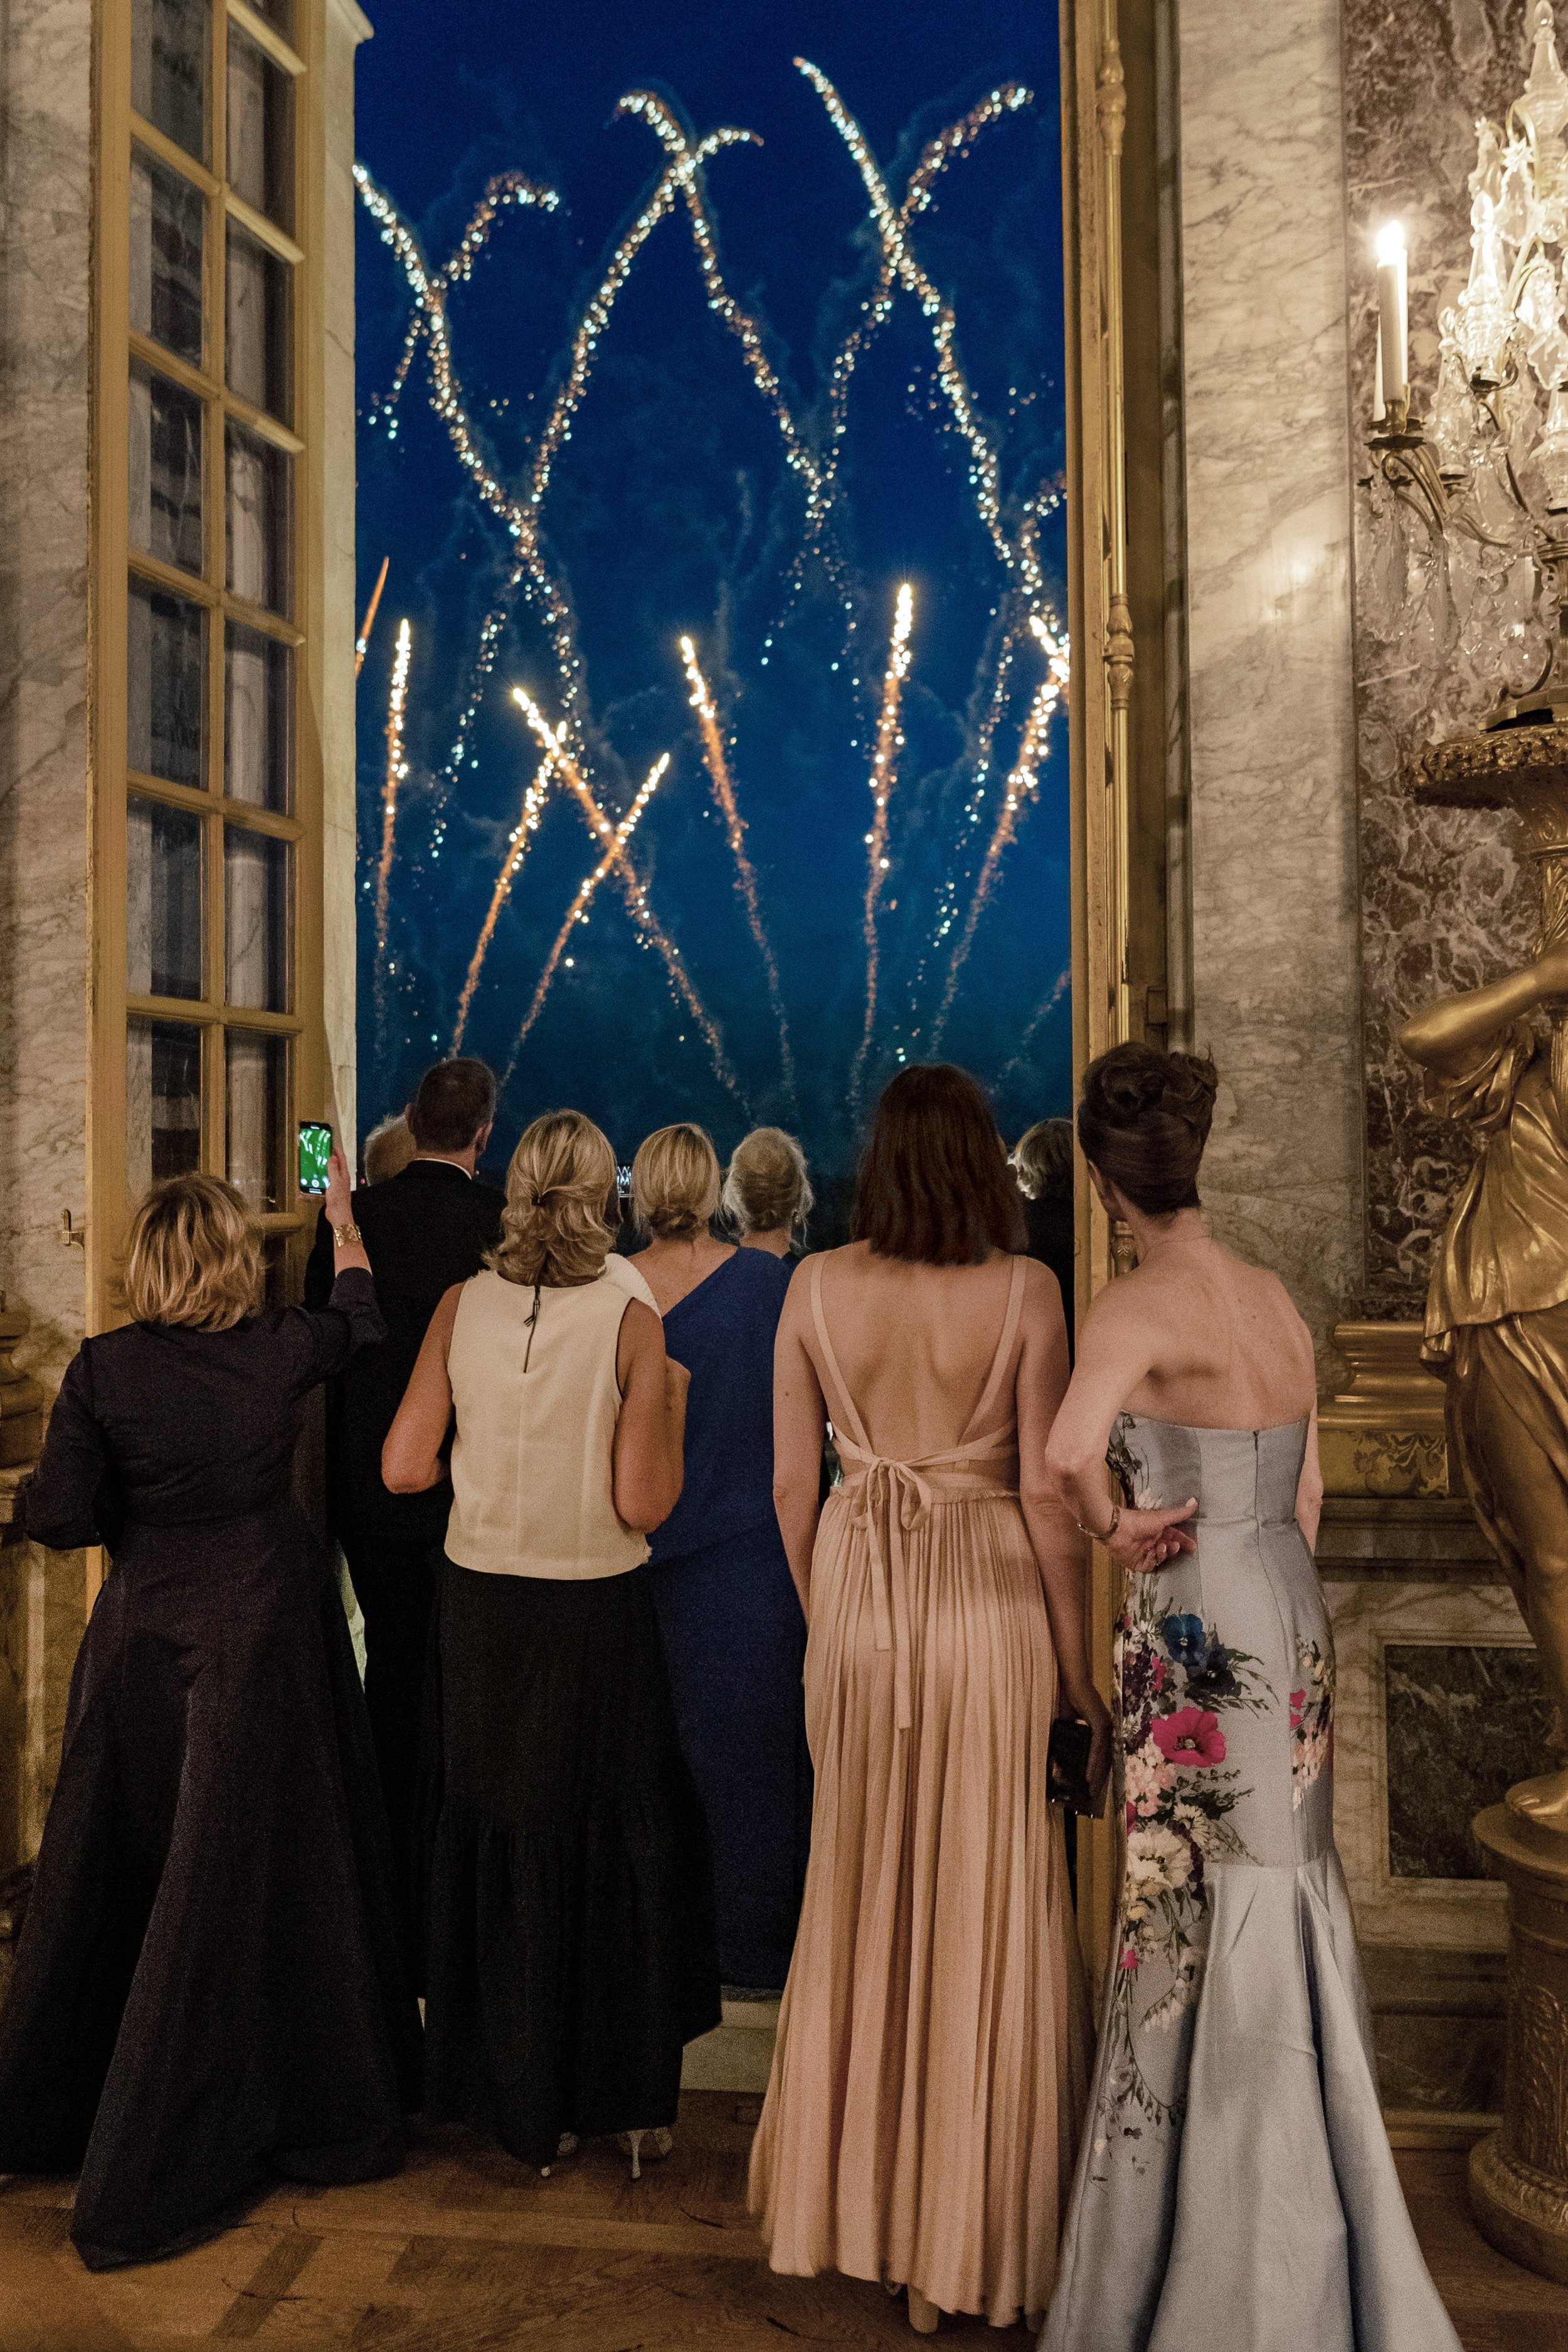 Fireworks at American Friends of Blerancourt at the Centennial of the Signing of the Treaty of Versailles at The Palace of Versailles in Versailles on 06/28/2019 (photo by Annie Watt Agency / Sipa USA)